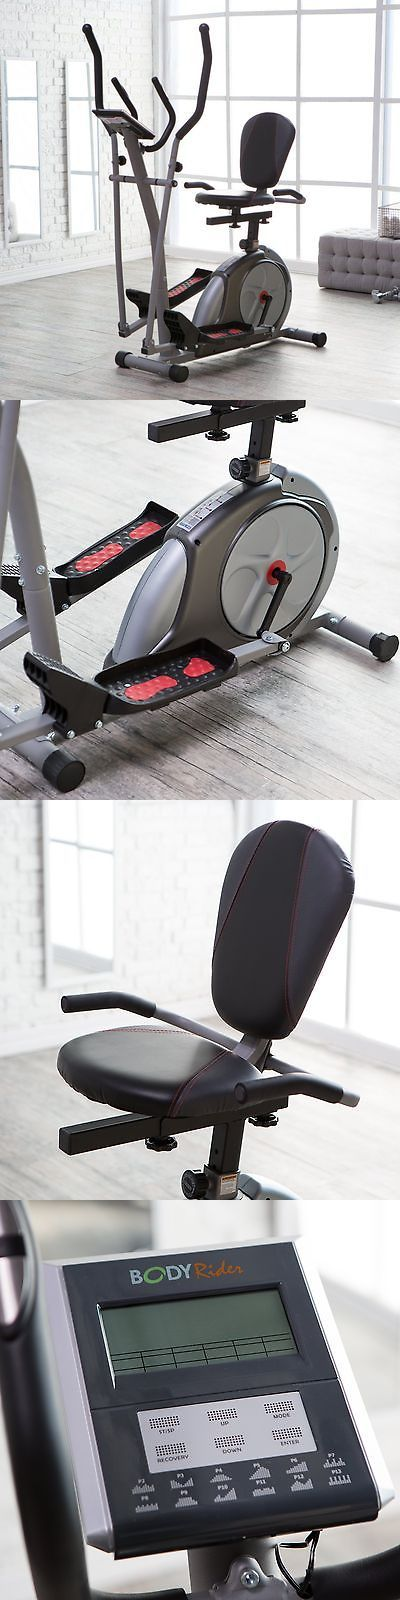 Abdominal Exercisers 15274: Body Rider 3-In-1 Trio Trainer - Elliptical Recumbent Bike Upright Bike, Silver -> BUY IT NOW ONLY: $299.98 on eBay!